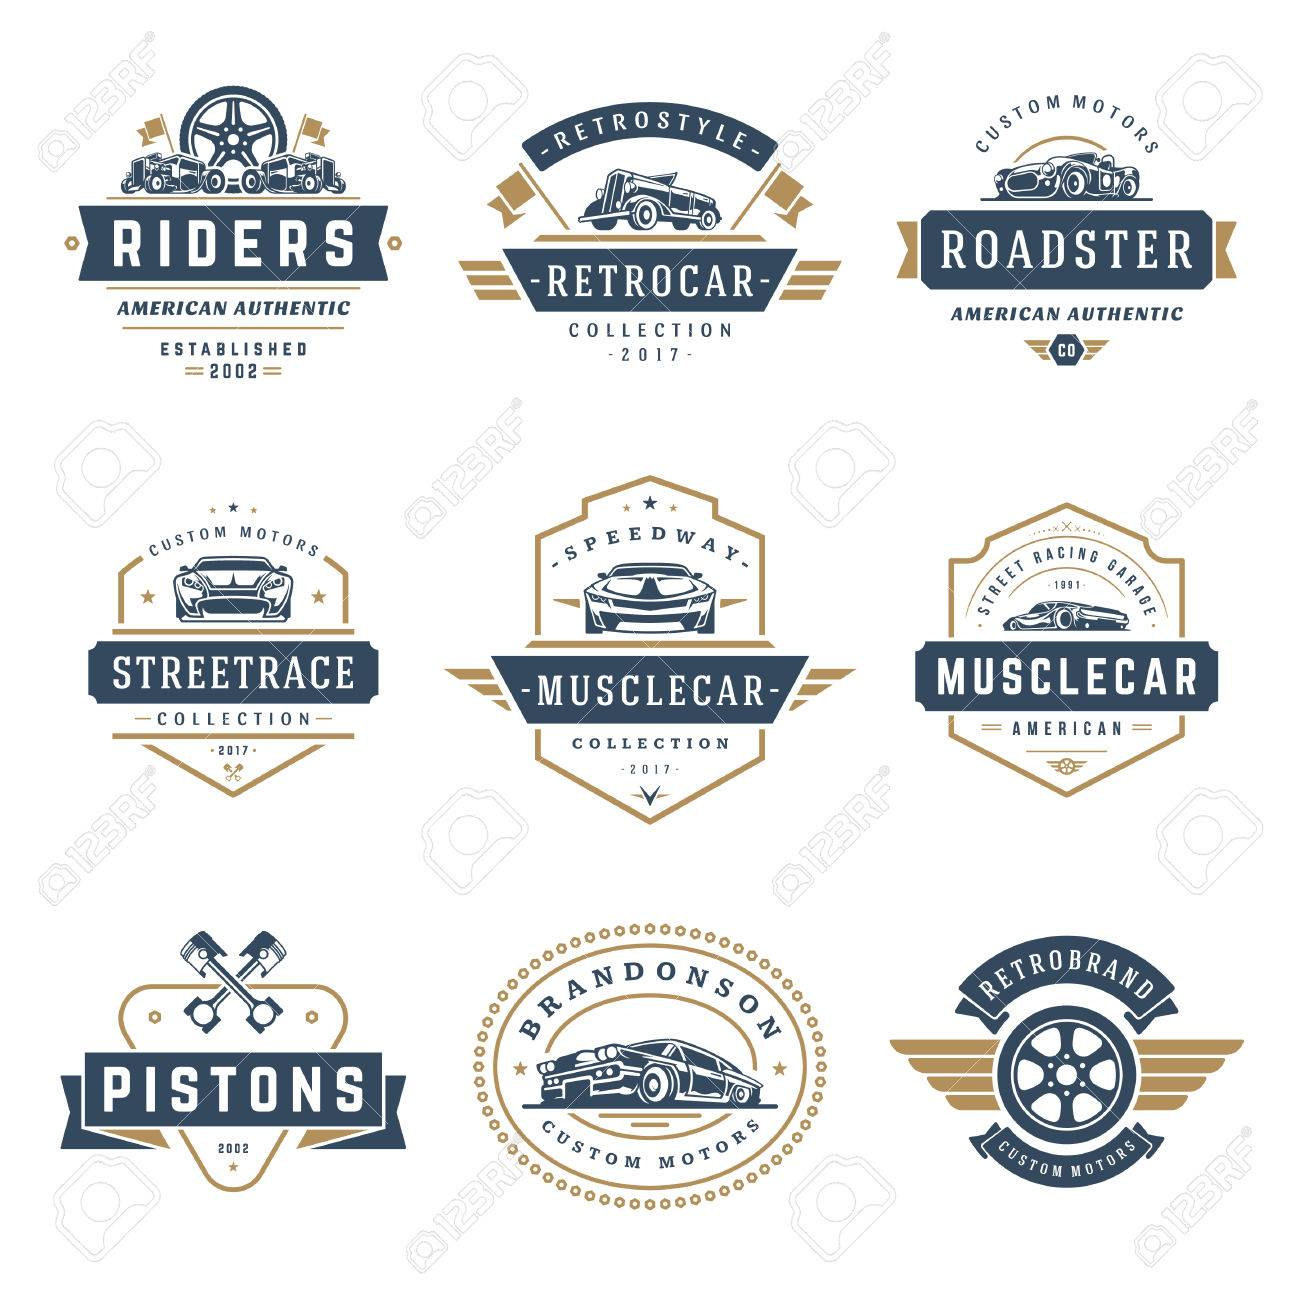 Car logos templates vector design elements set, vintage style emblems and badges retro illustration. Classic cars repairs, tire service silhouettes. - 85239836